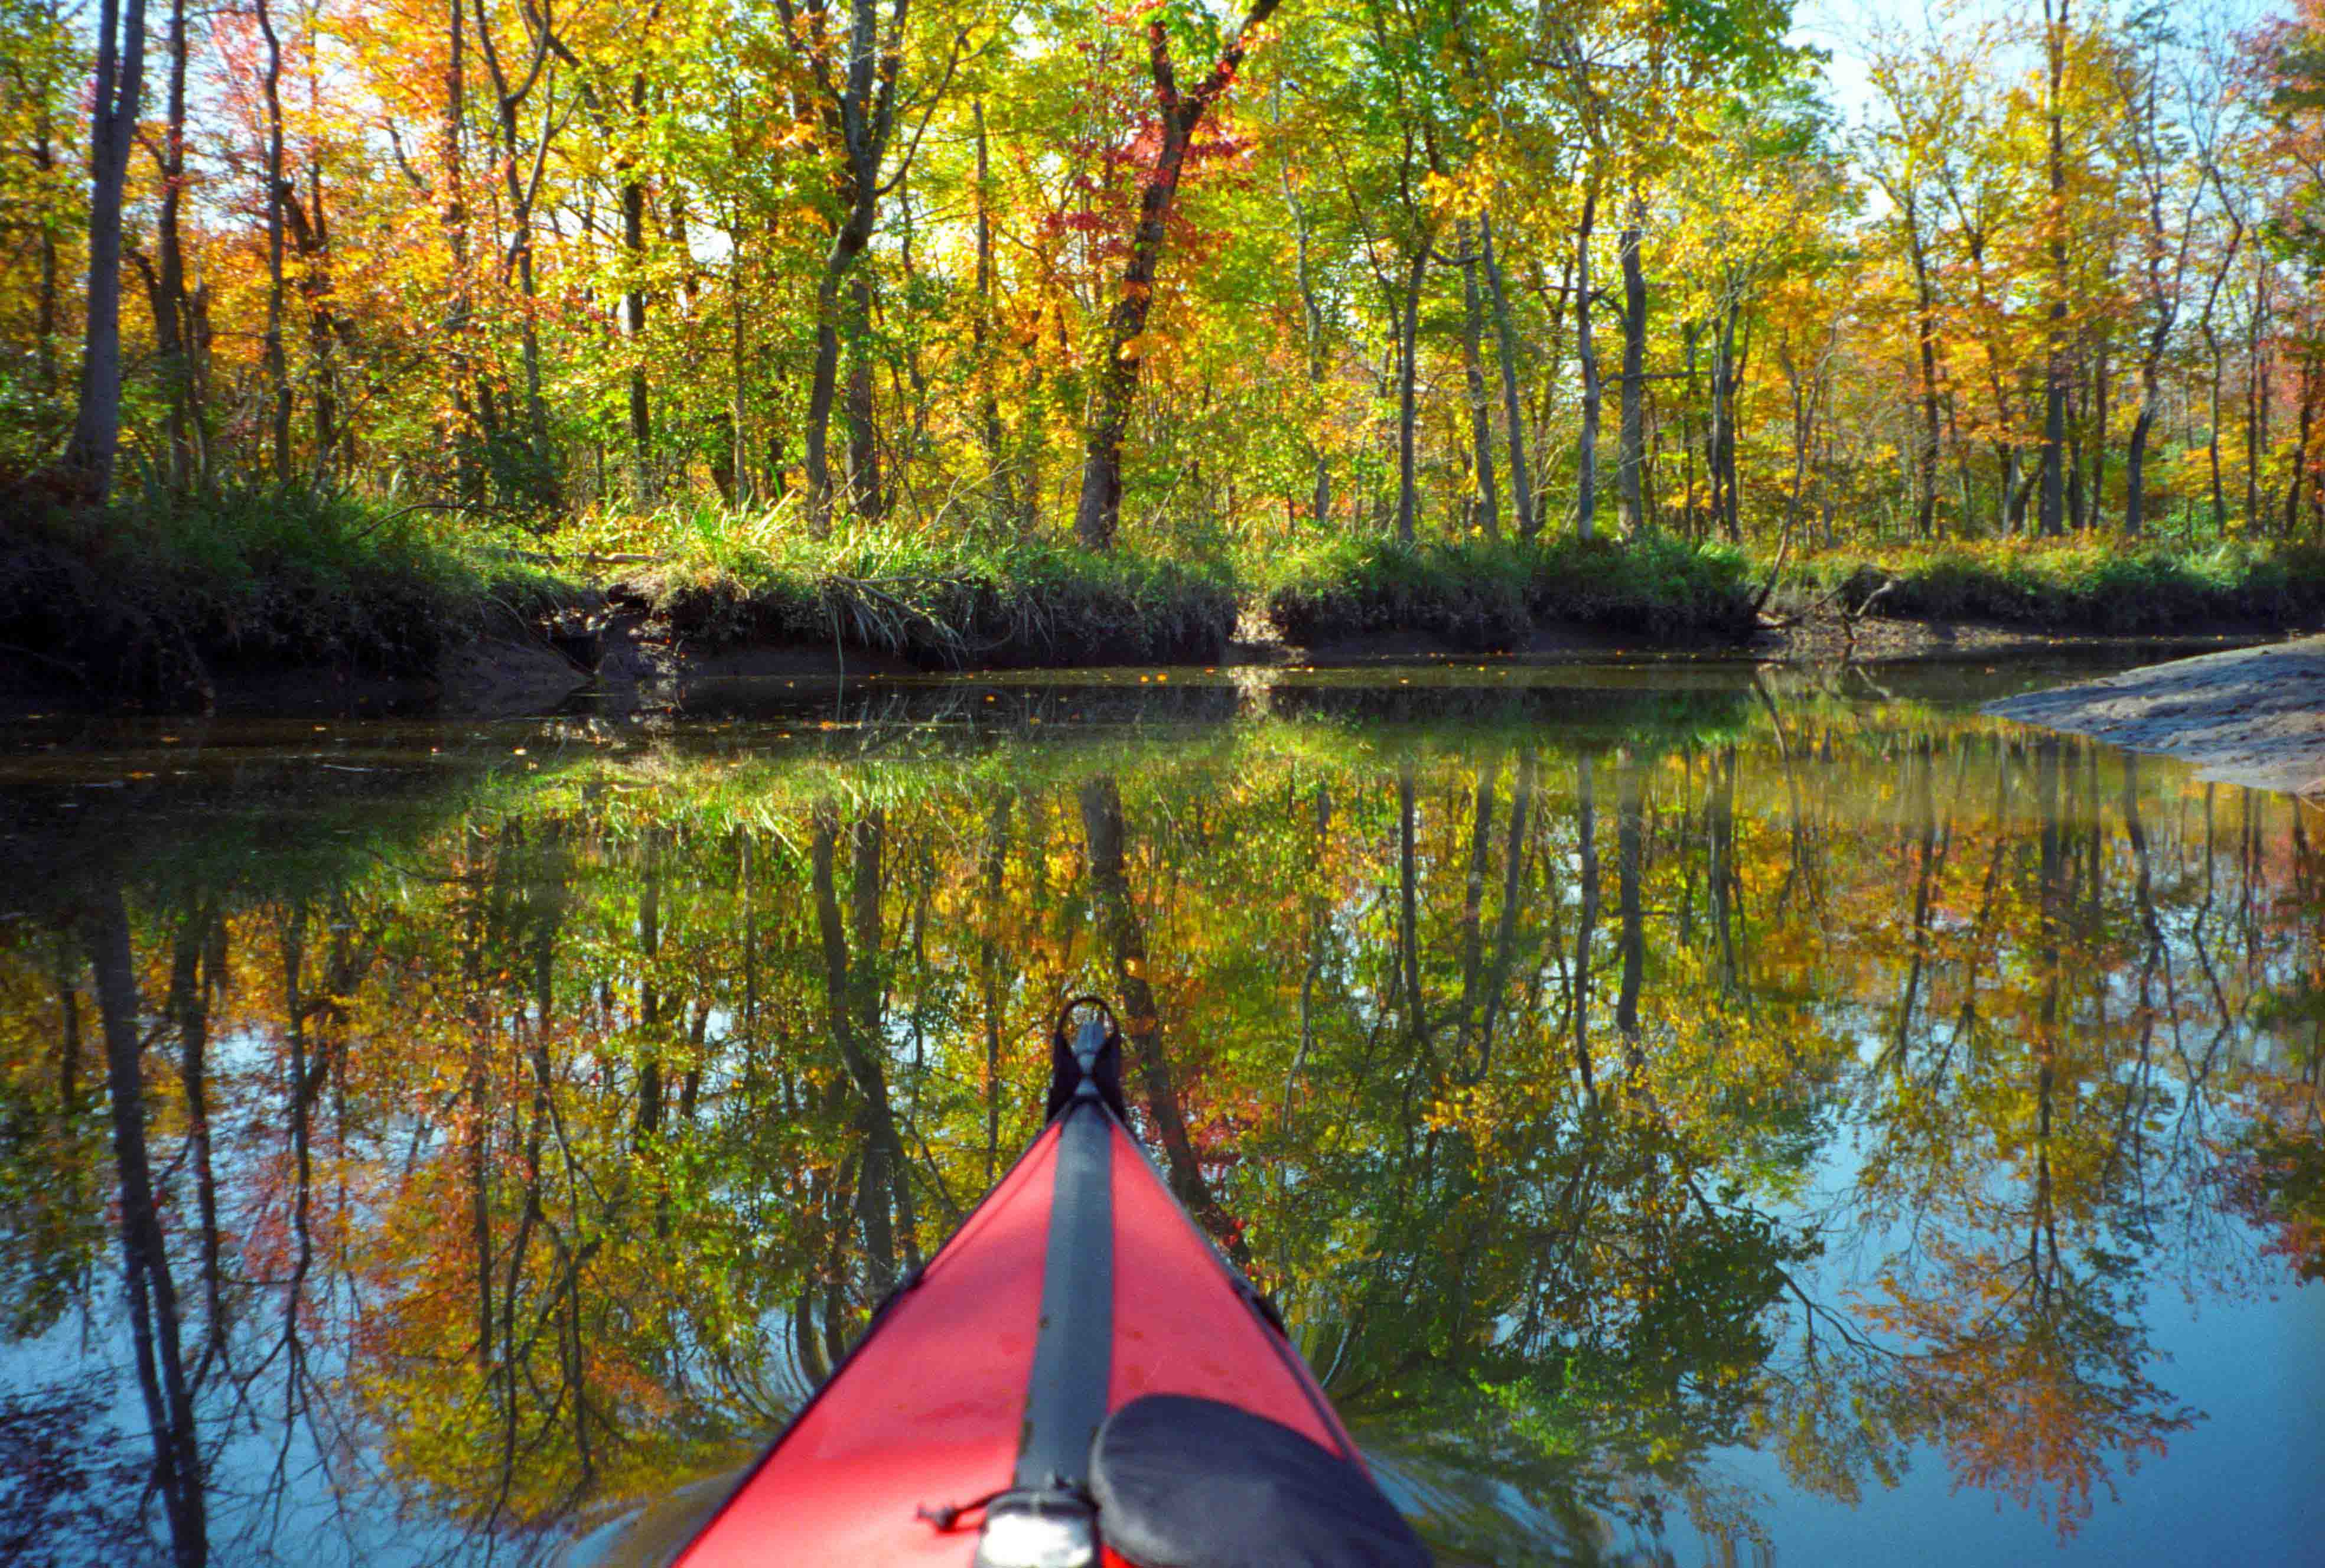 albany and new york city offers a number of kayak camping spots but